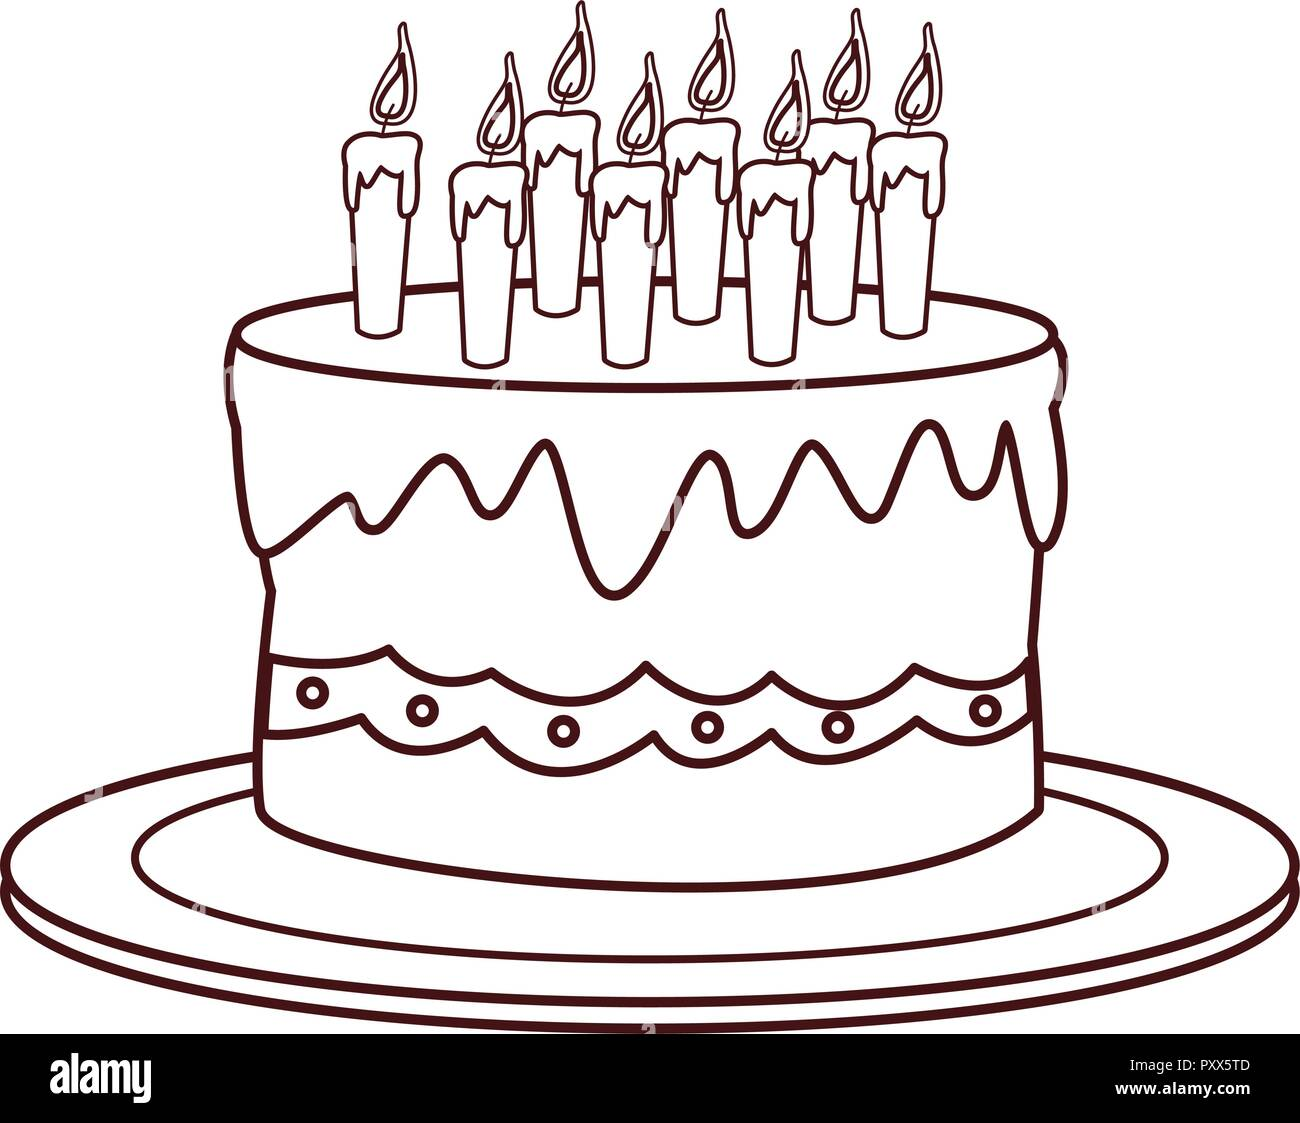 Fine Birthday Cake Cartoon Stock Vector Art Illustration Vector Funny Birthday Cards Online Inifodamsfinfo